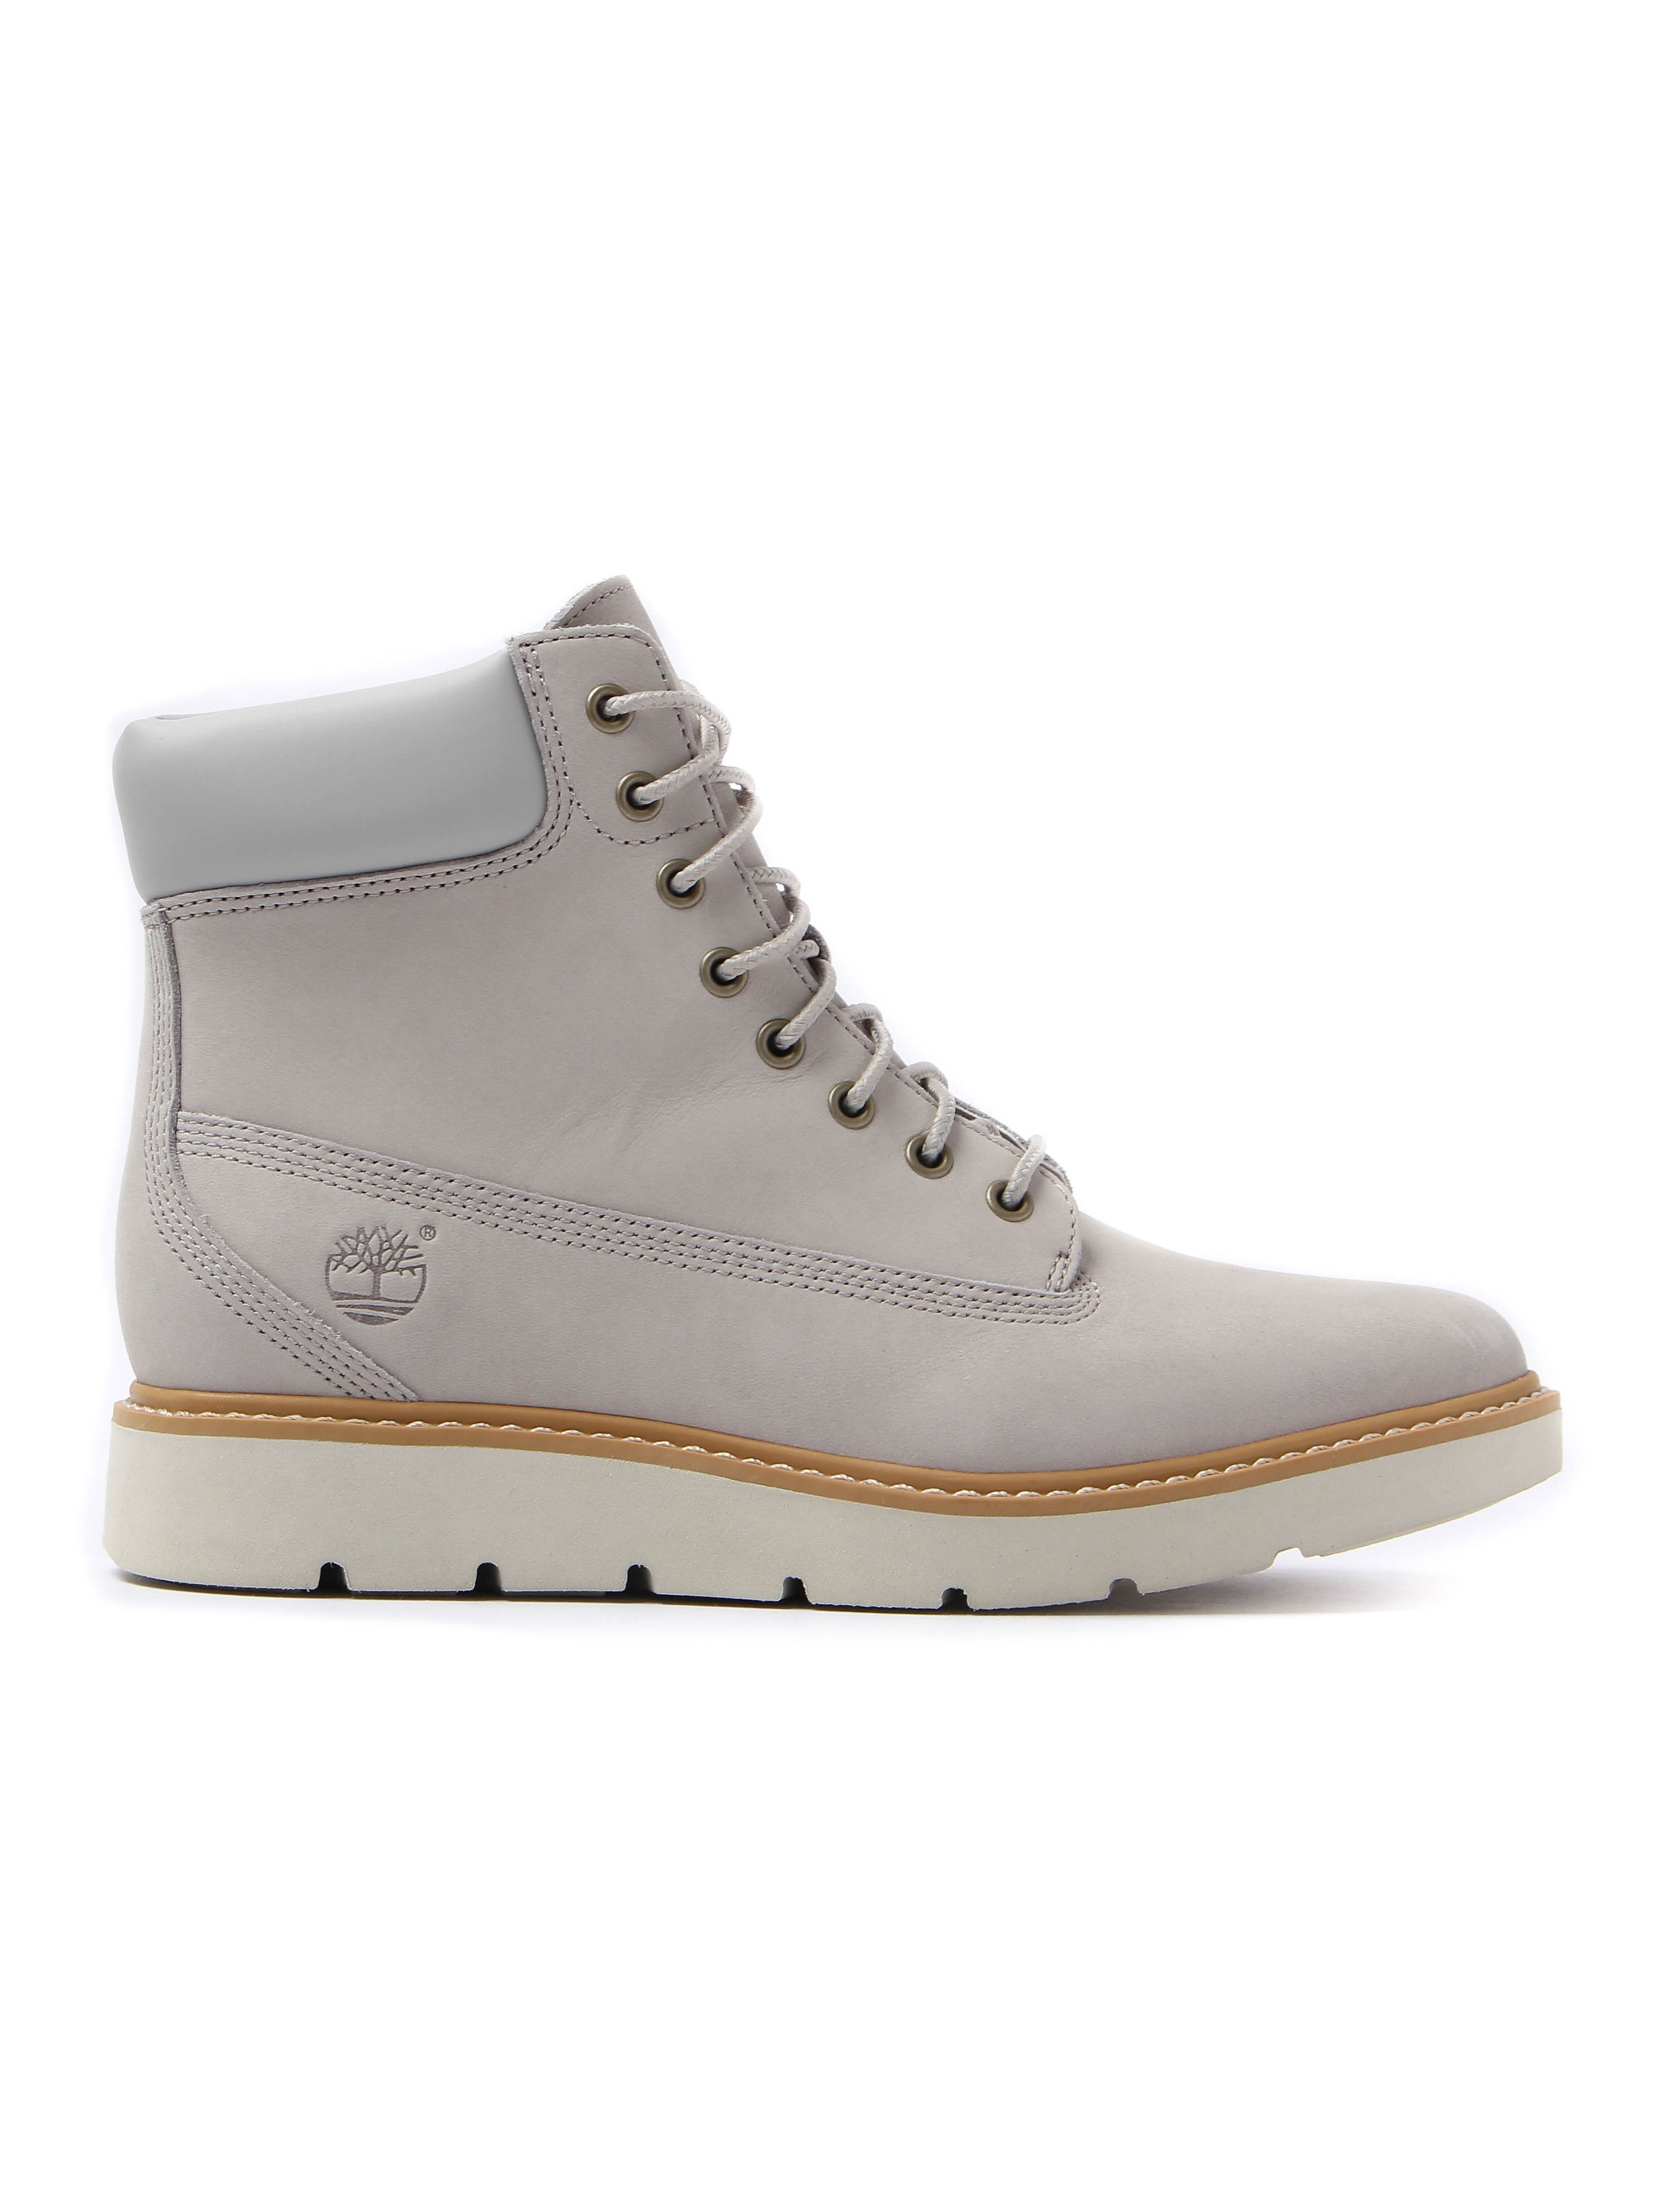 Timberland Women's Kenniston 6In Lace Up Leather Boots - Flint Grey